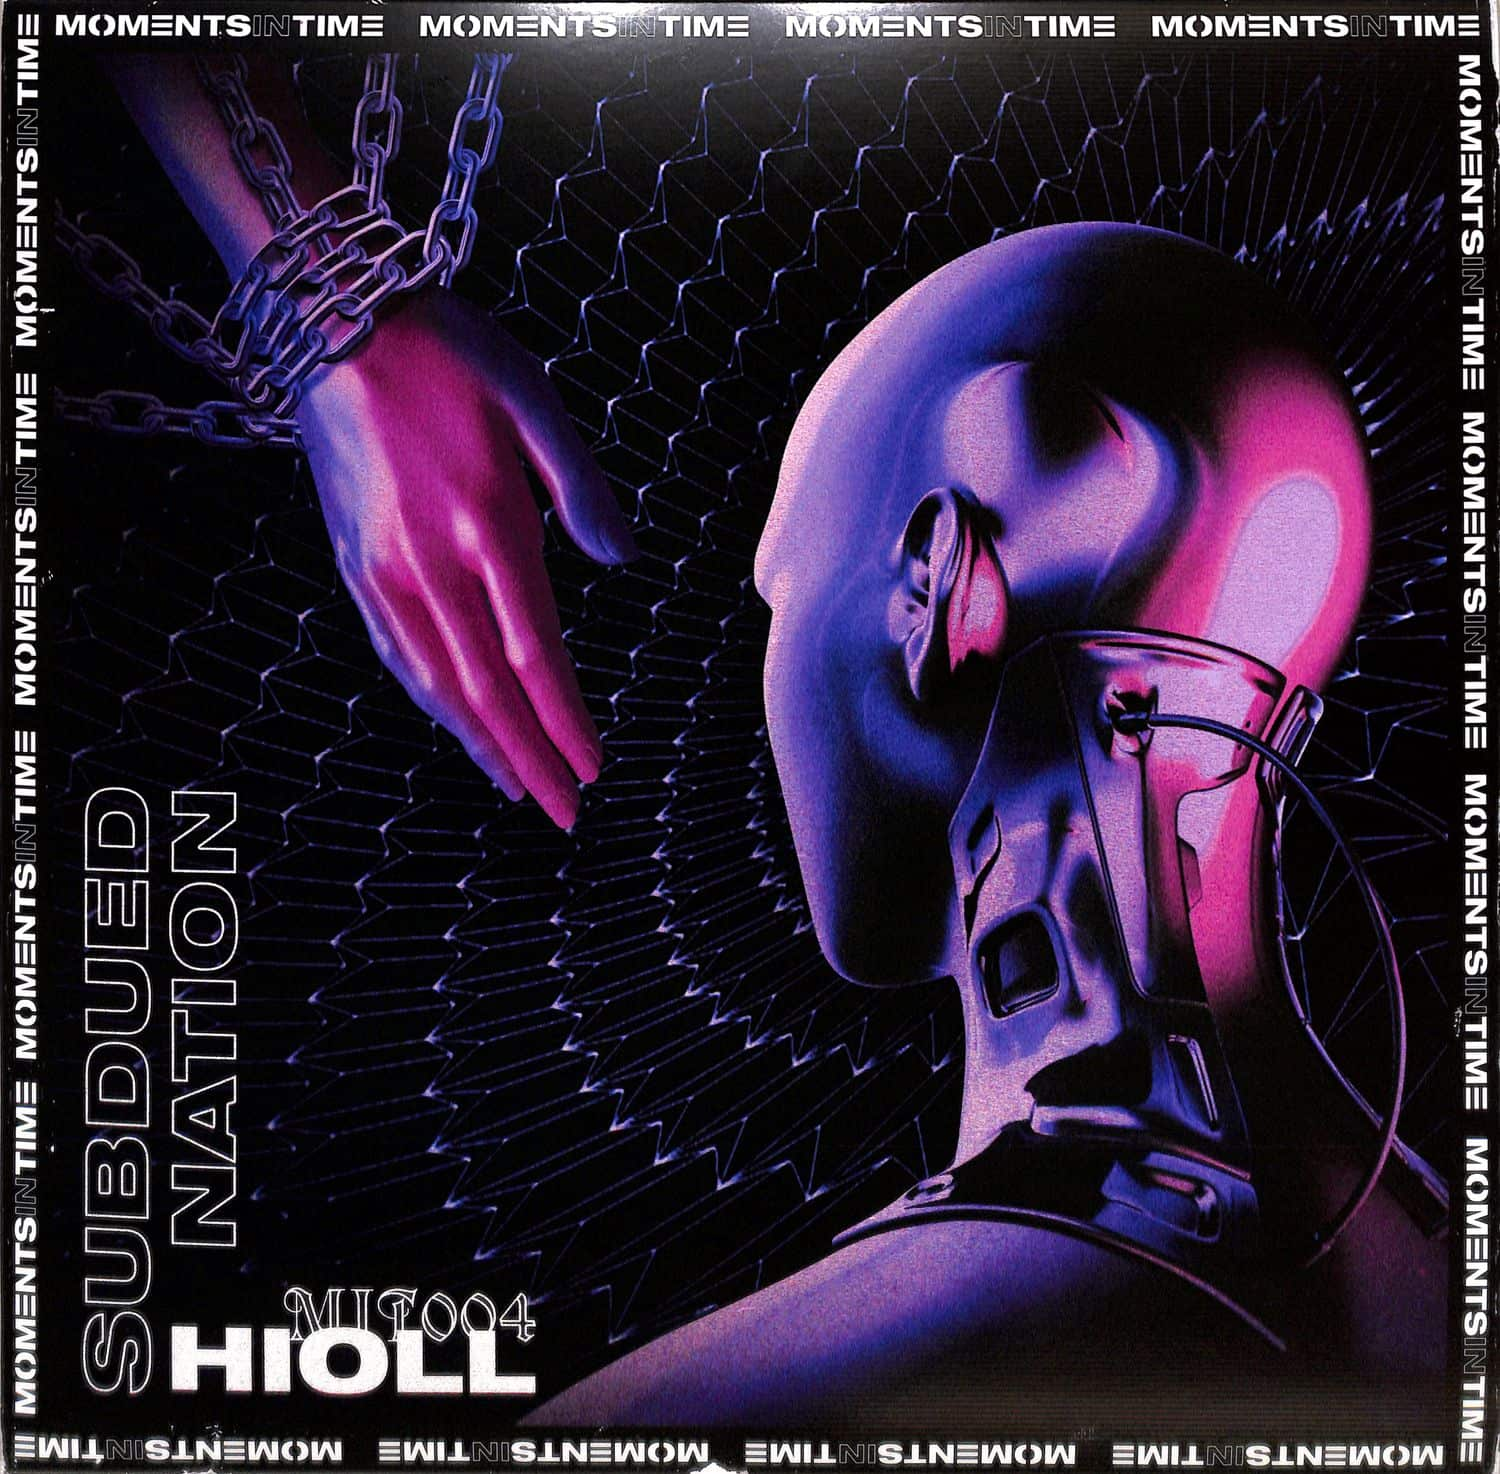 Hioll - SUBDUED NATION EP